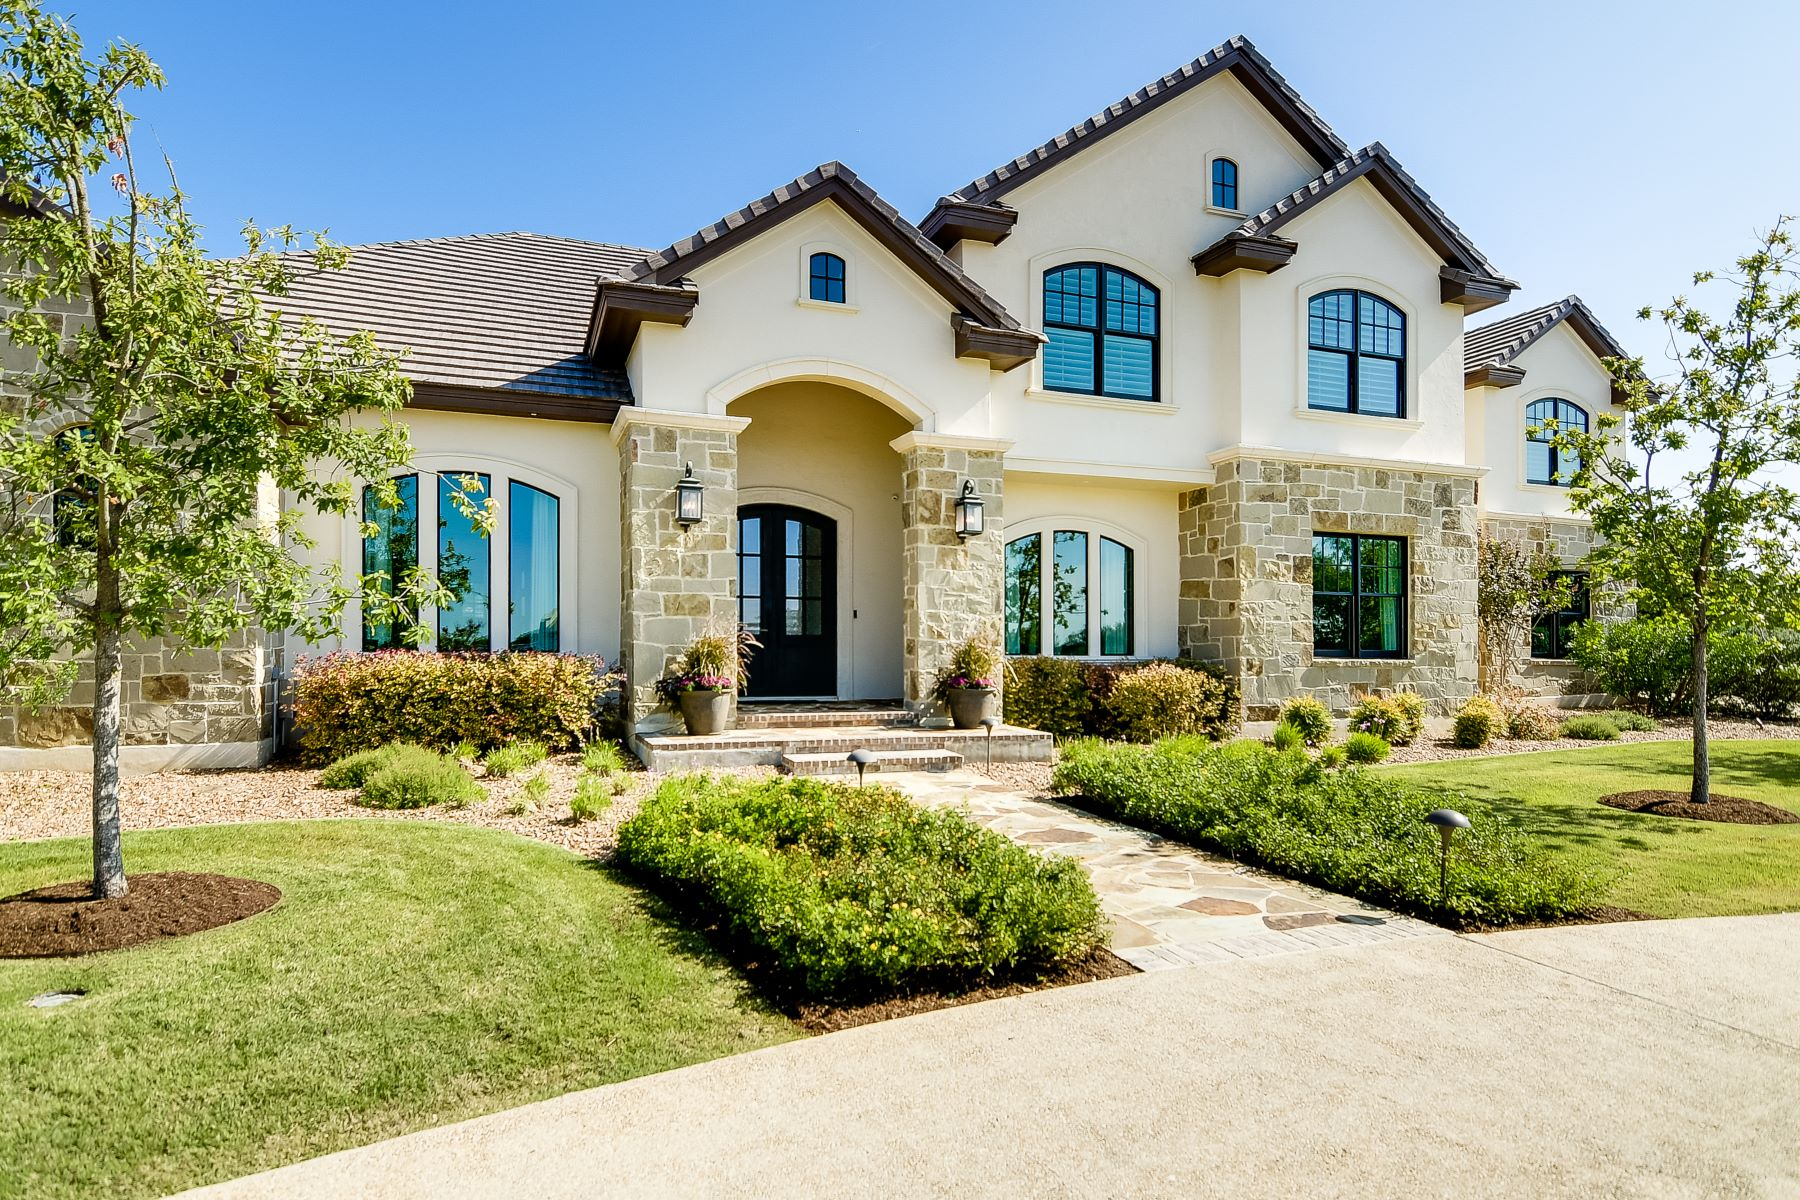 Single Family Homes for Sale at Exceptional Custom Home in Huntington at Shavano Park 106 Wellesley Landing Shavano Park, Texas 78231 United States